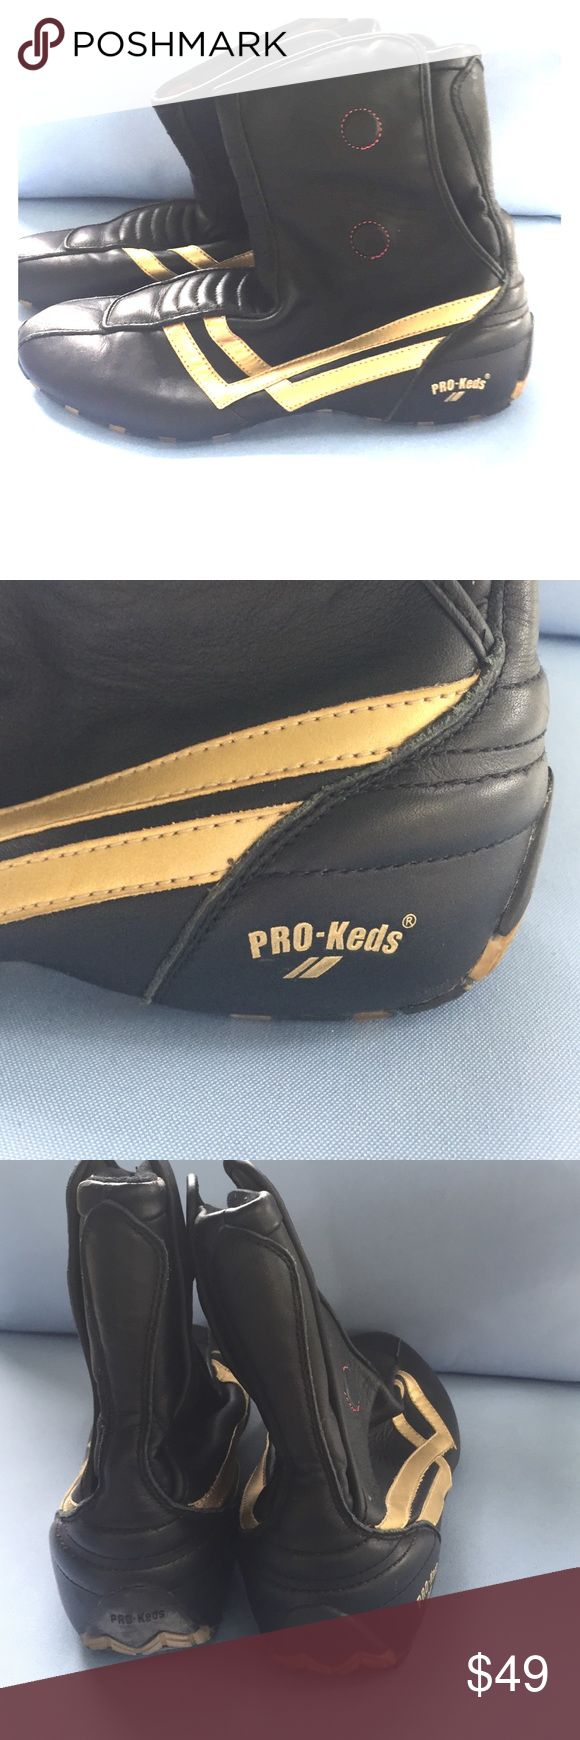 pro keds leather upper